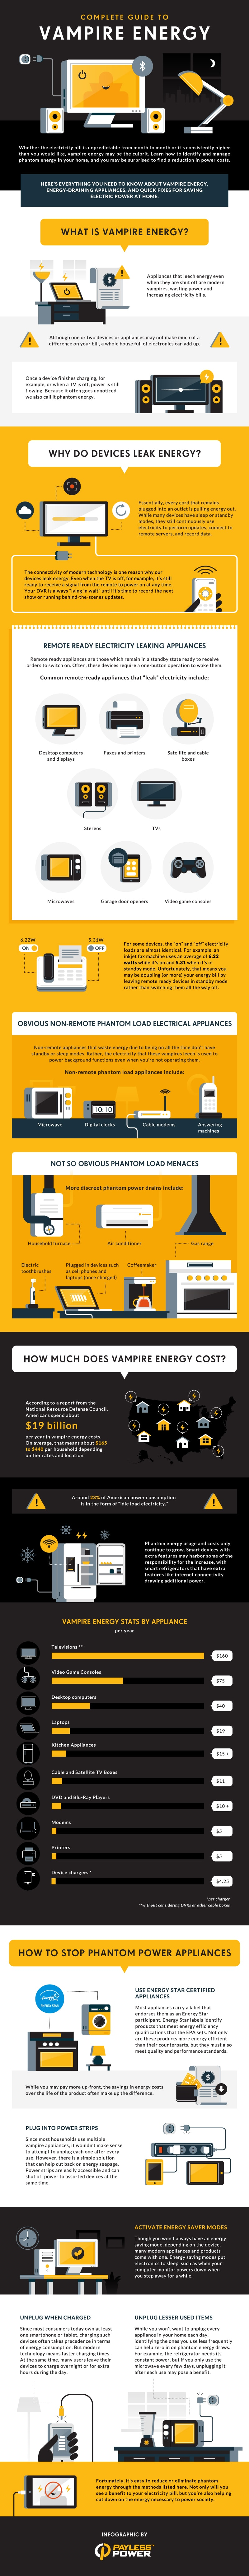 Everything You Need to Know About Vampire Energy [Infographic]